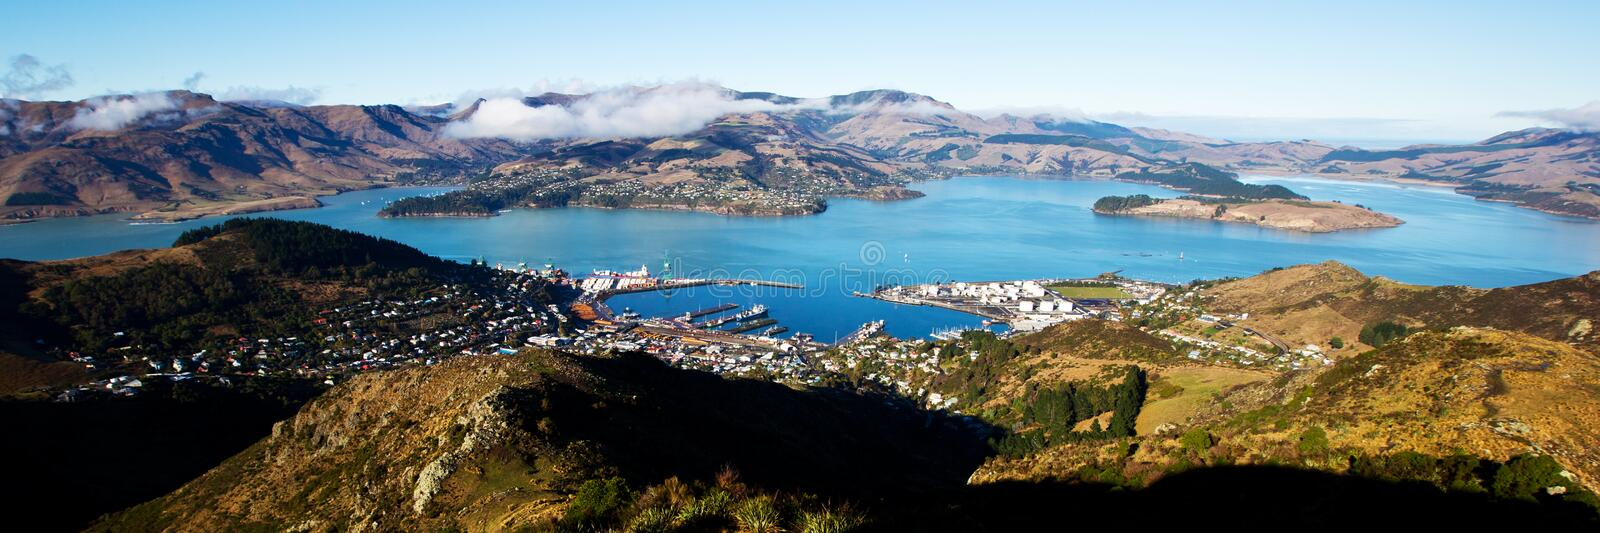 Christchurch Gondola View. A picturesque view from atop Christchurch Gondola on Lyttelton and Quail Island. The blue bays surrounded by hills and mountains is stock photography